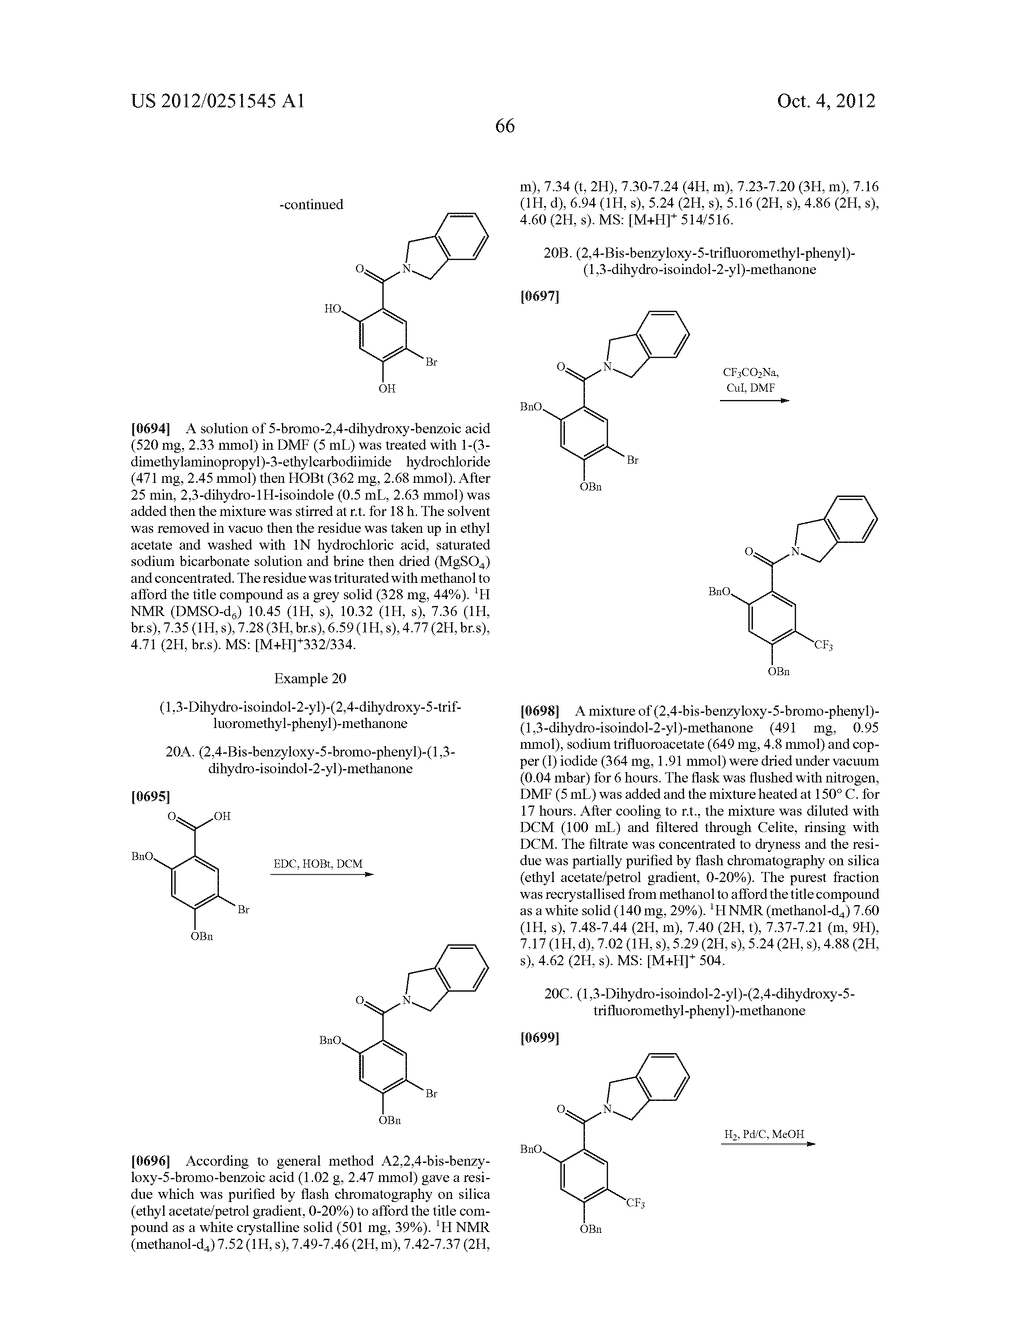 Therapeutic Combinations Of Hydroxybenzamide Derivatives As Inhibitors Of     HSP90 - diagram, schematic, and image 67